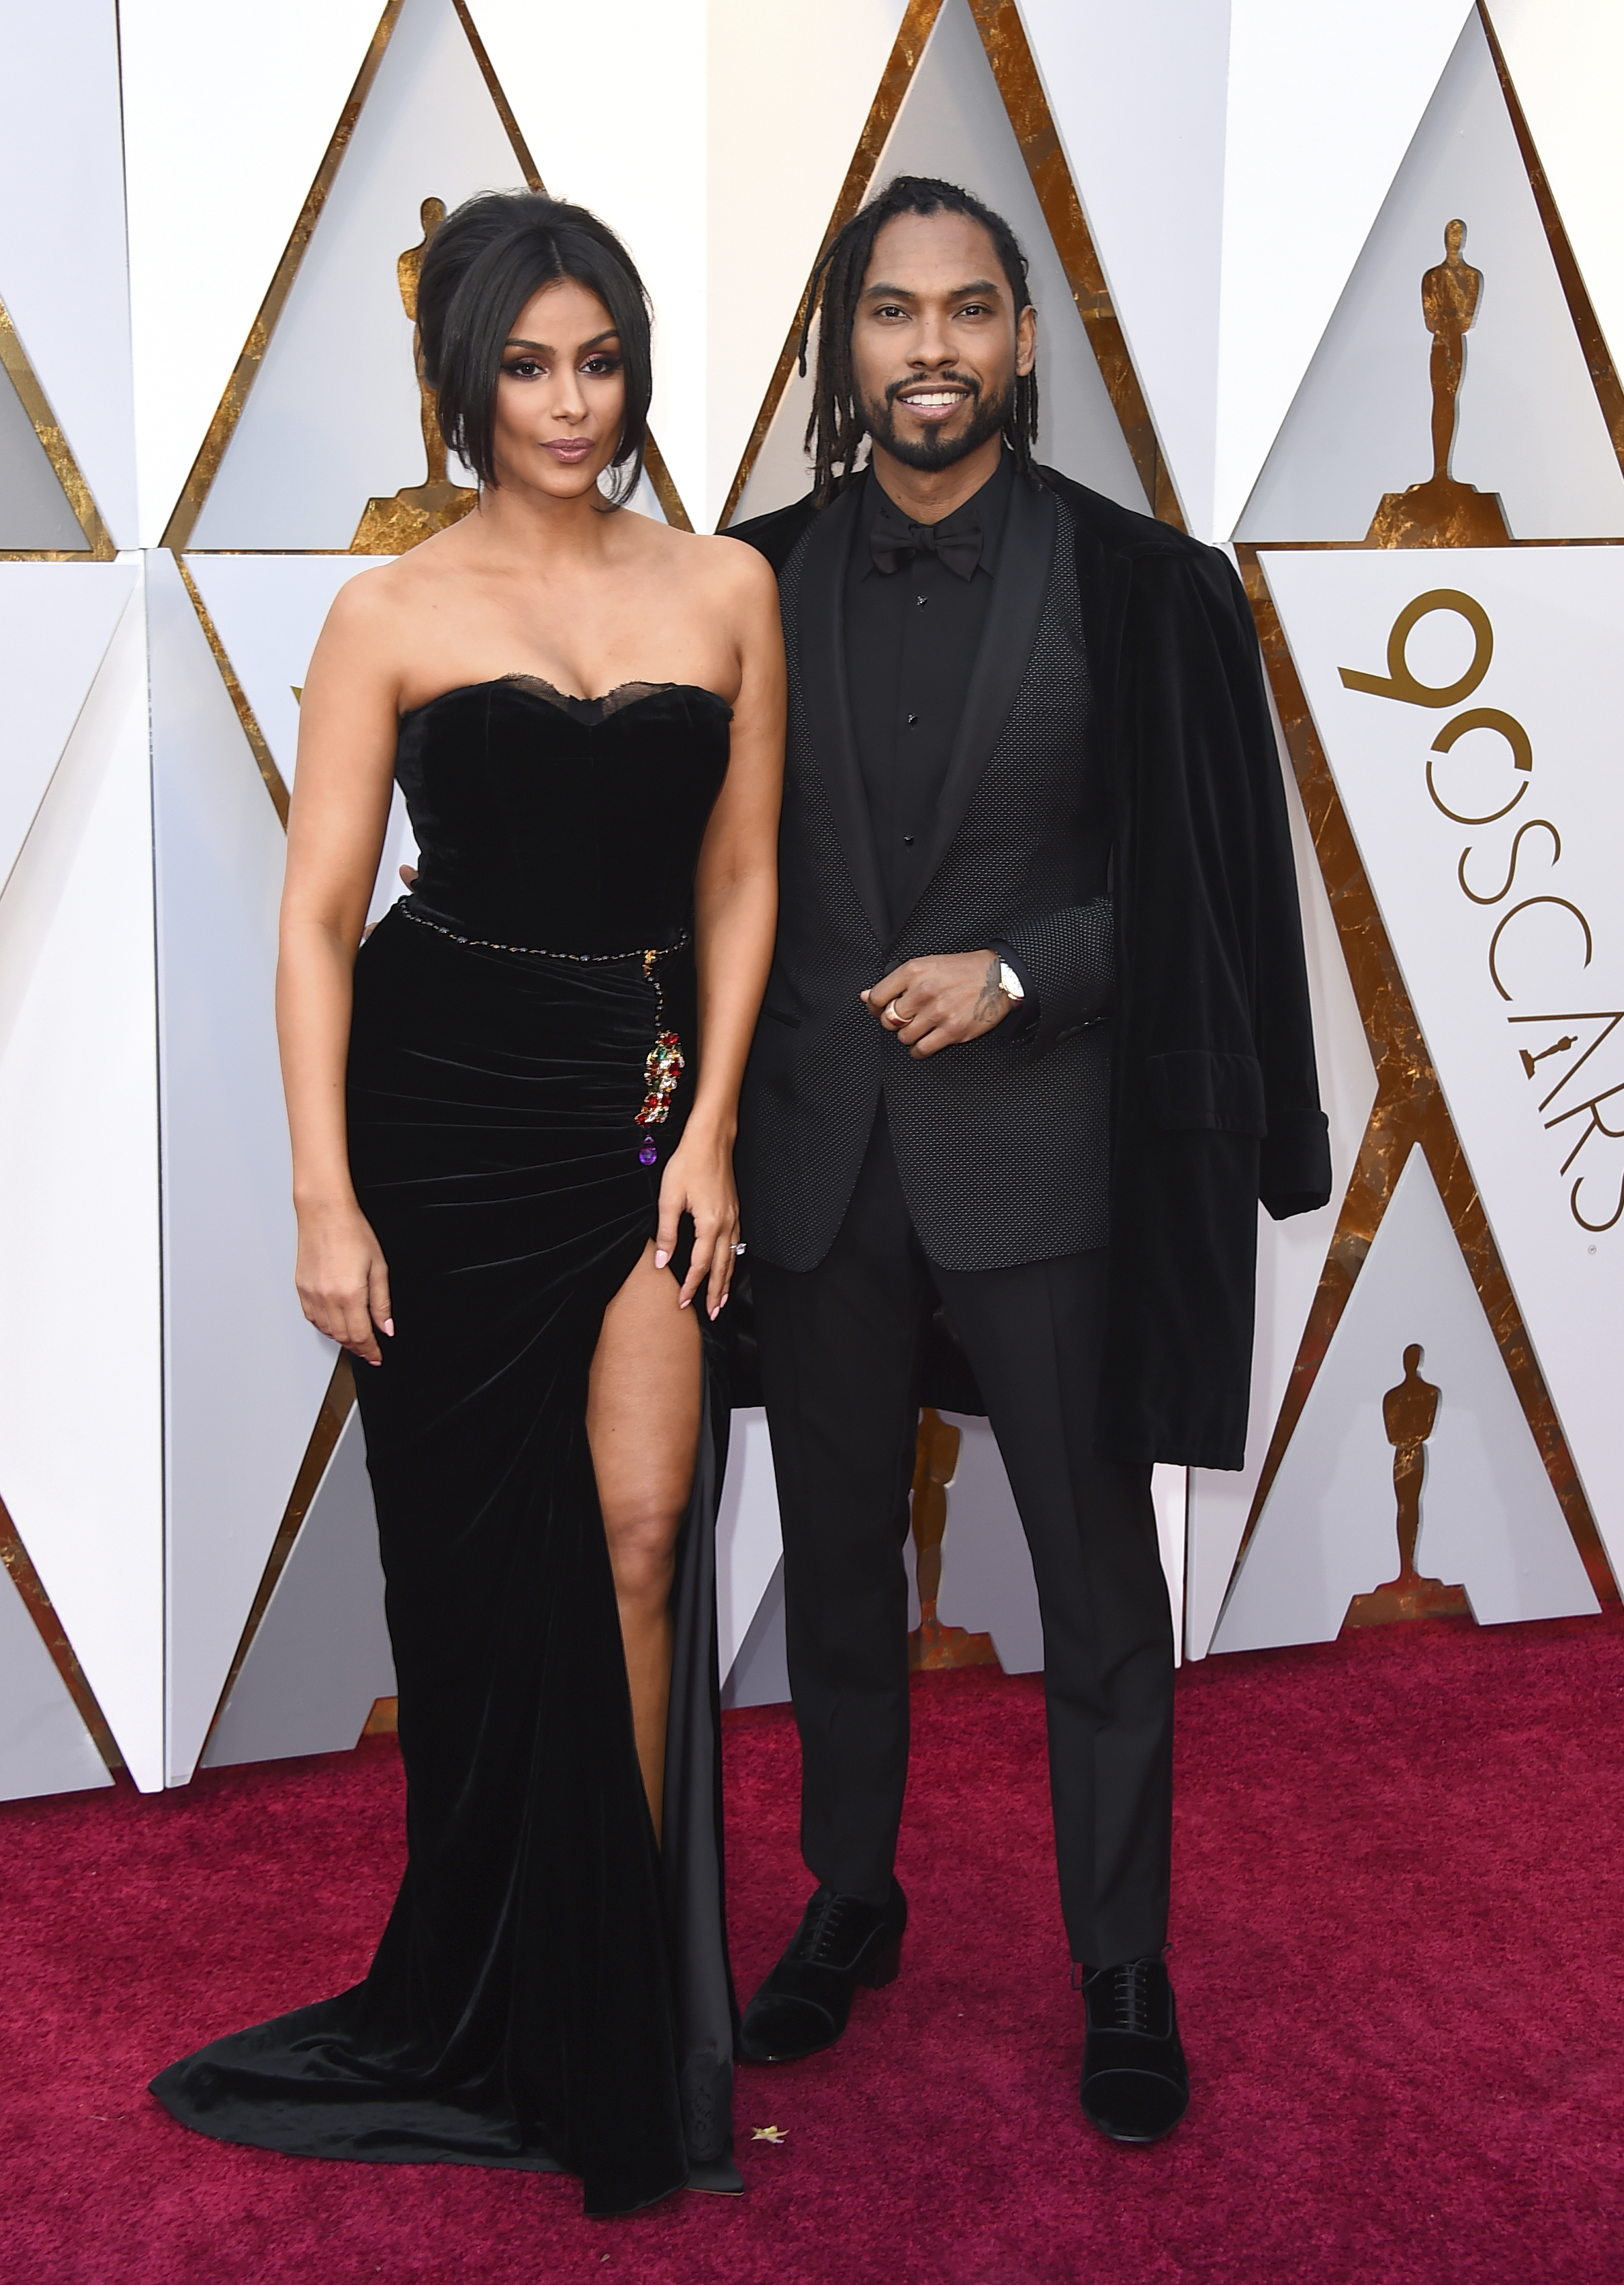 <div class='meta'><div class='origin-logo' data-origin='none'></div><span class='caption-text' data-credit='Jordan Strauss/Invision/AP'>Nazanin Mandi, left, and Miguel arrive at the Oscars on Sunday, March 4, 2018, at the Dolby Theatre in Los Angeles.</span></div>